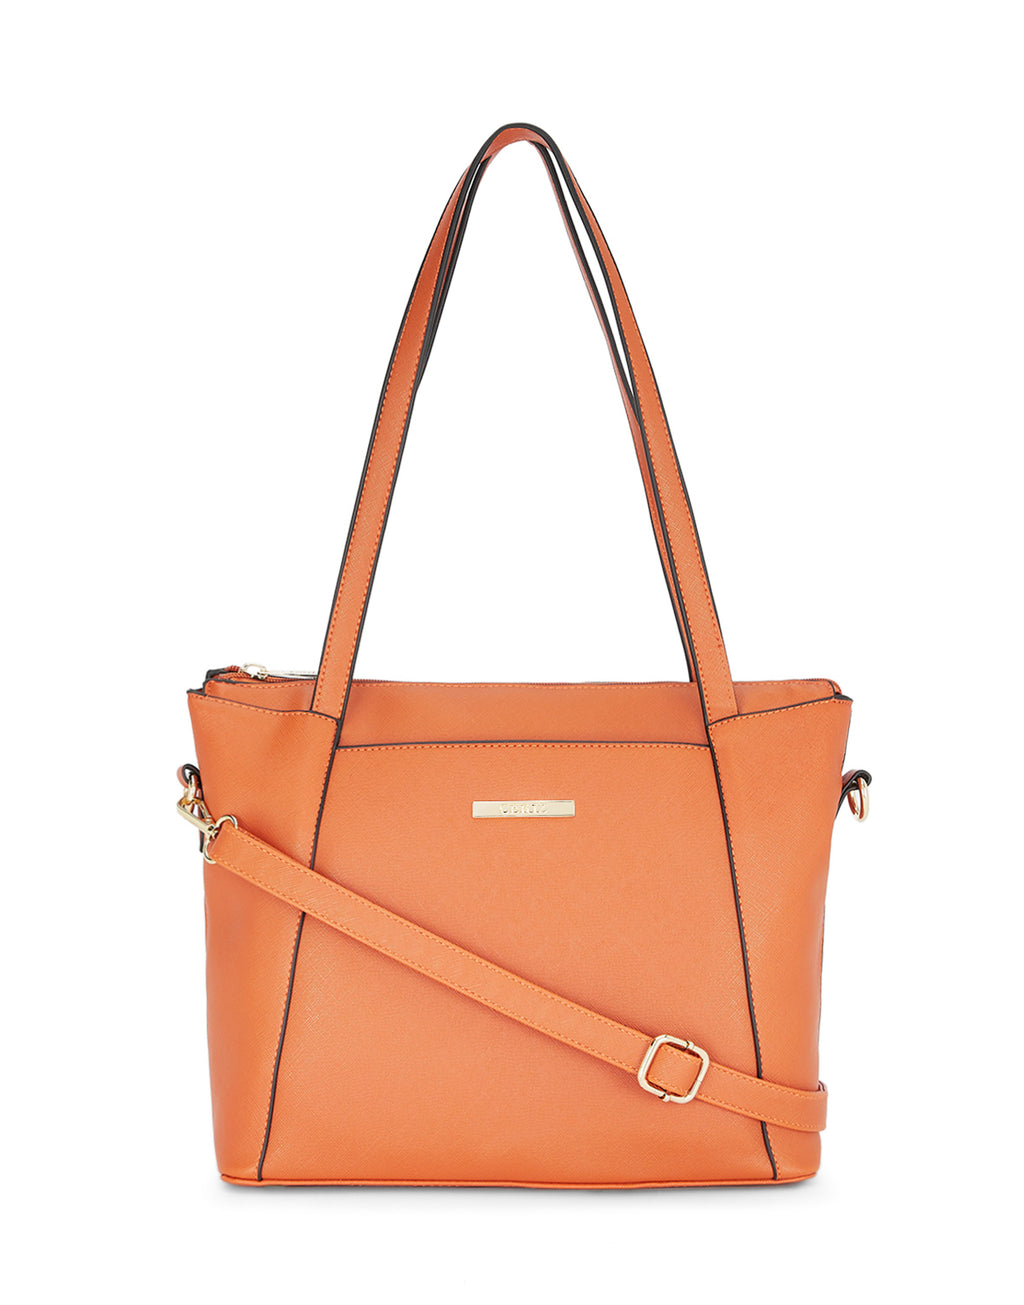 Margit Textured Rust Handbag